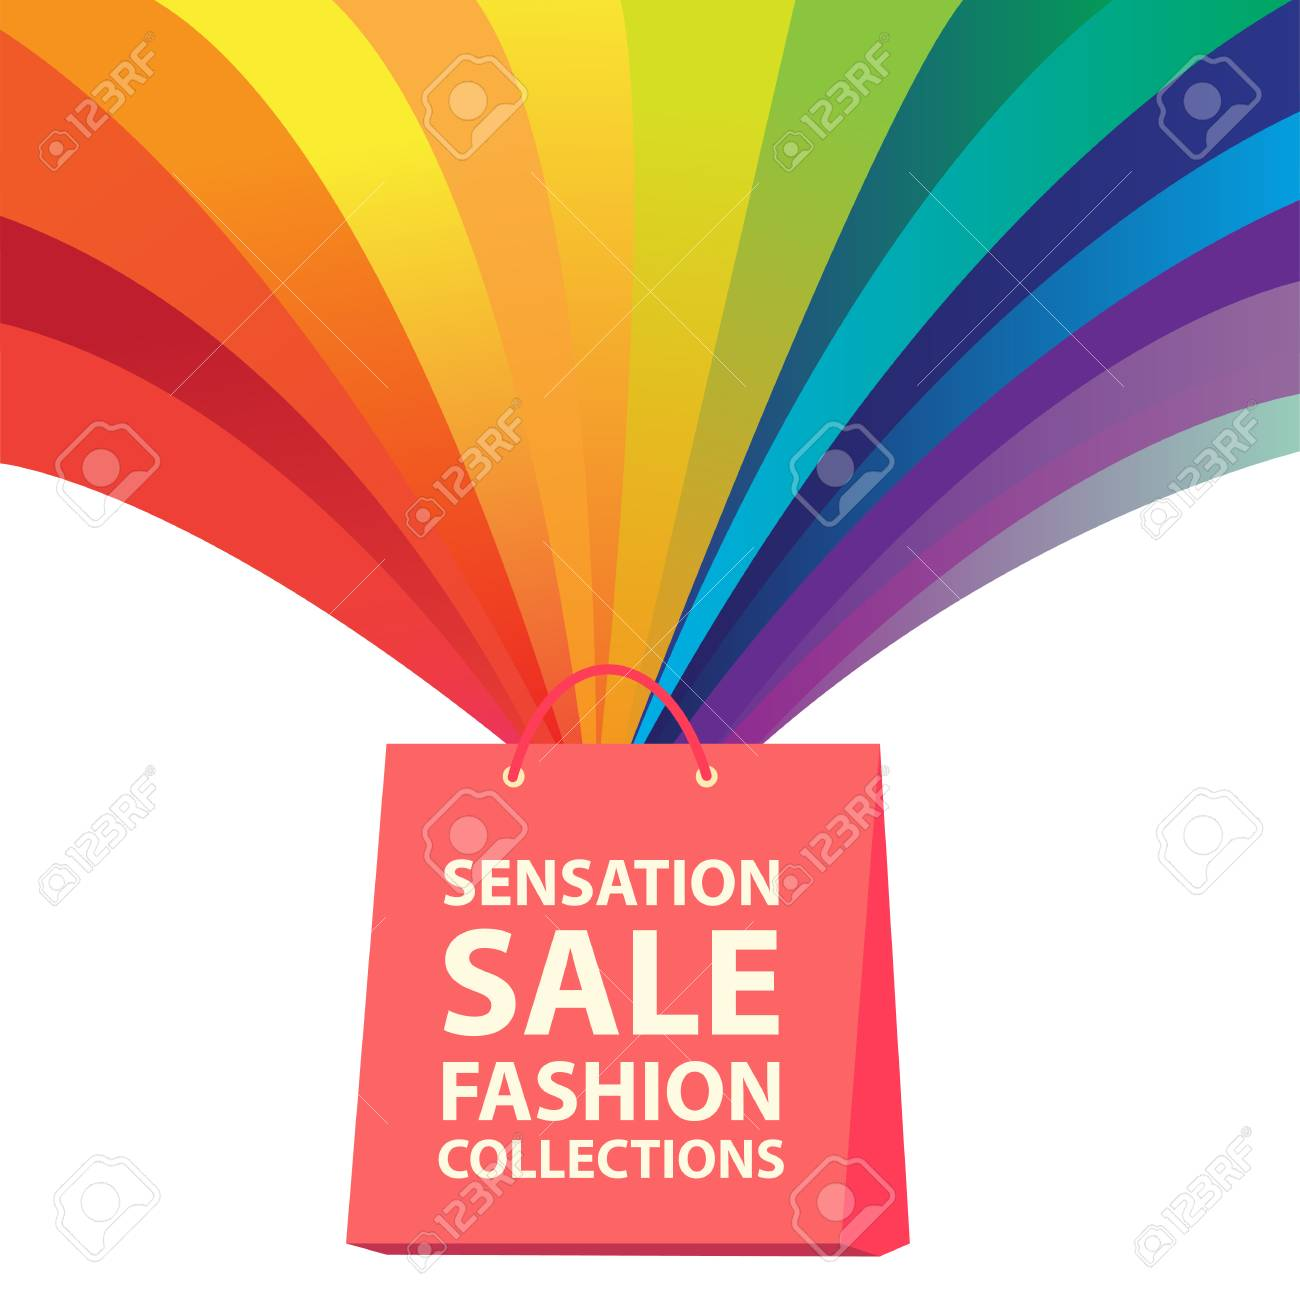 1abe041701c Sensation Sale Fashion Collections Rainbow Shopping Bag Vector Image Stock  Vector - 107225010